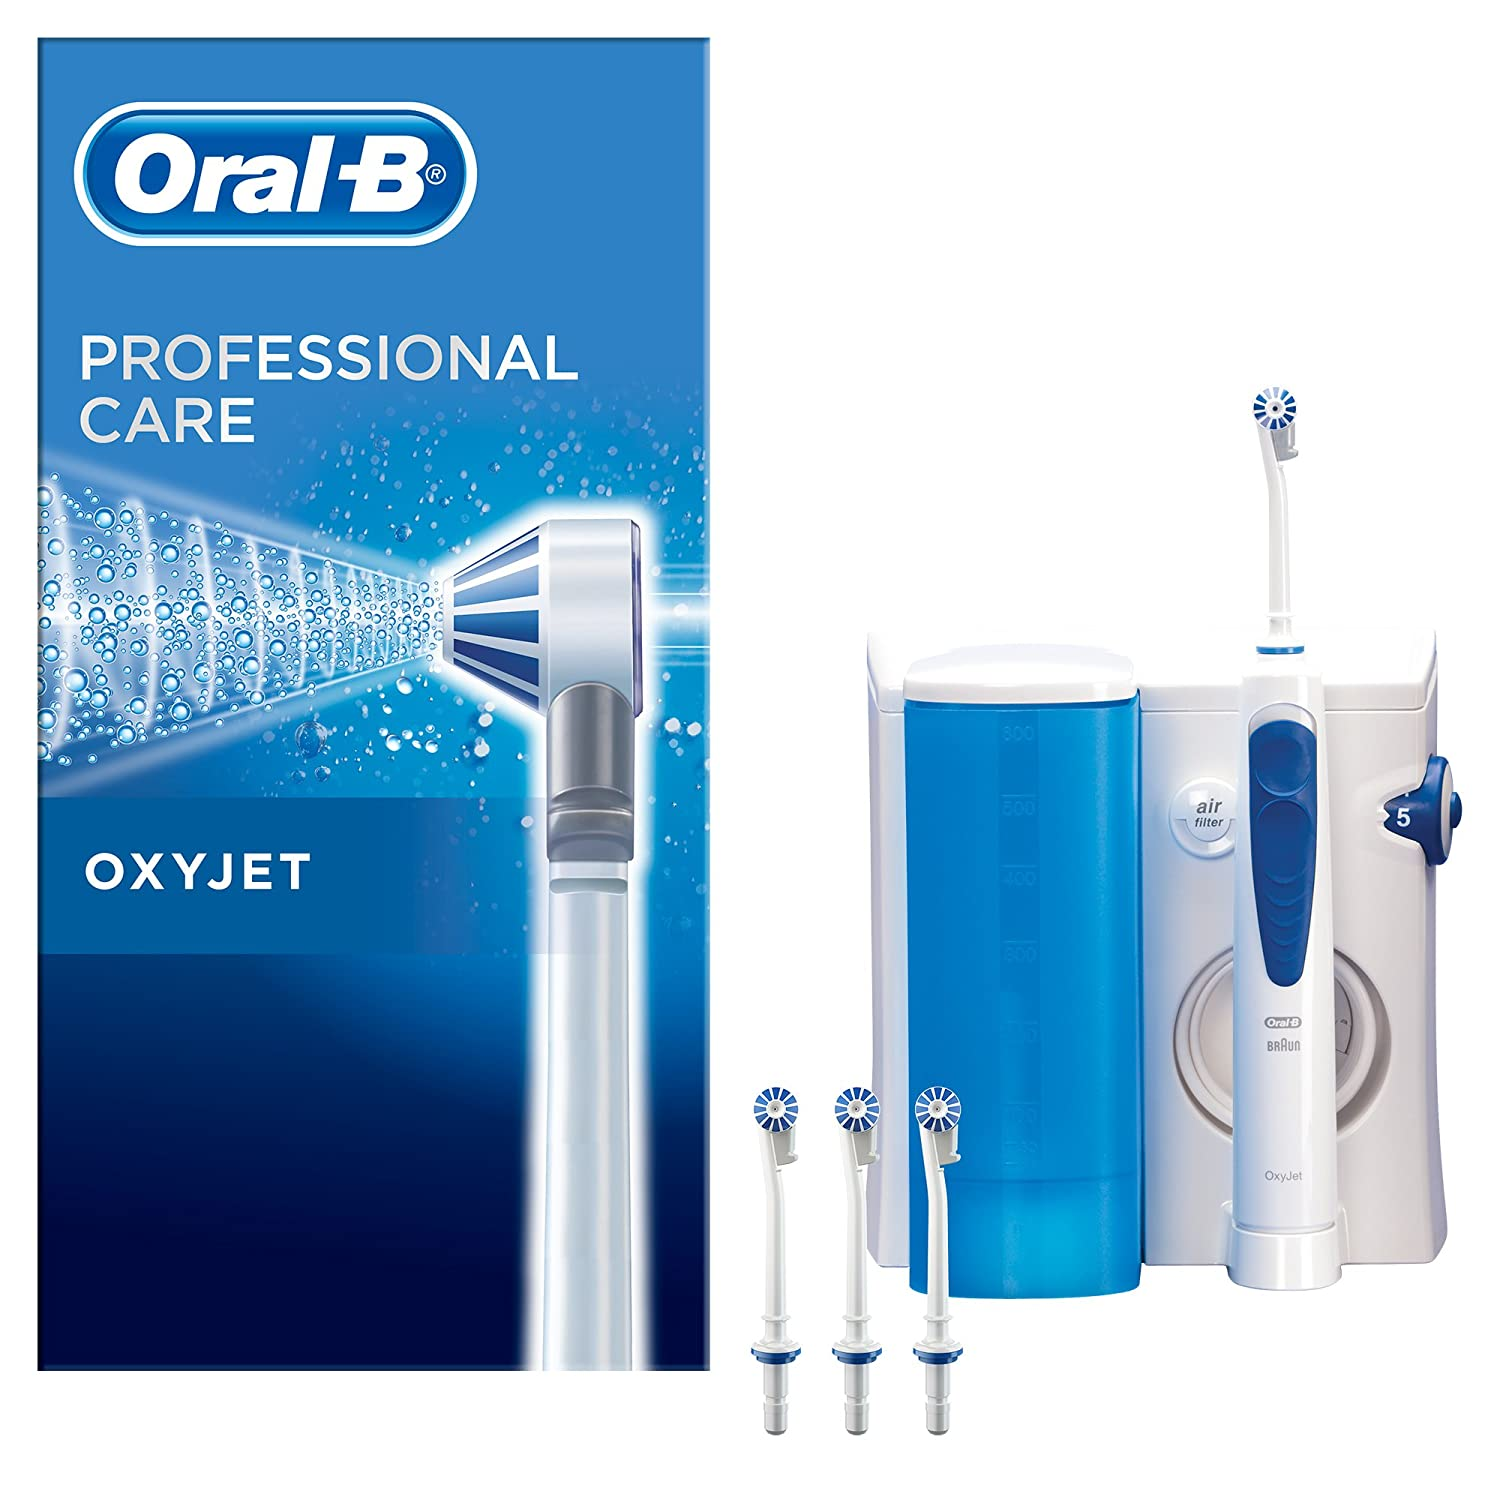 Braun Oral-B Oxyjet MD20 Professional Care Oral Shower 100-240 Volt Made in Germany ORIGINAL